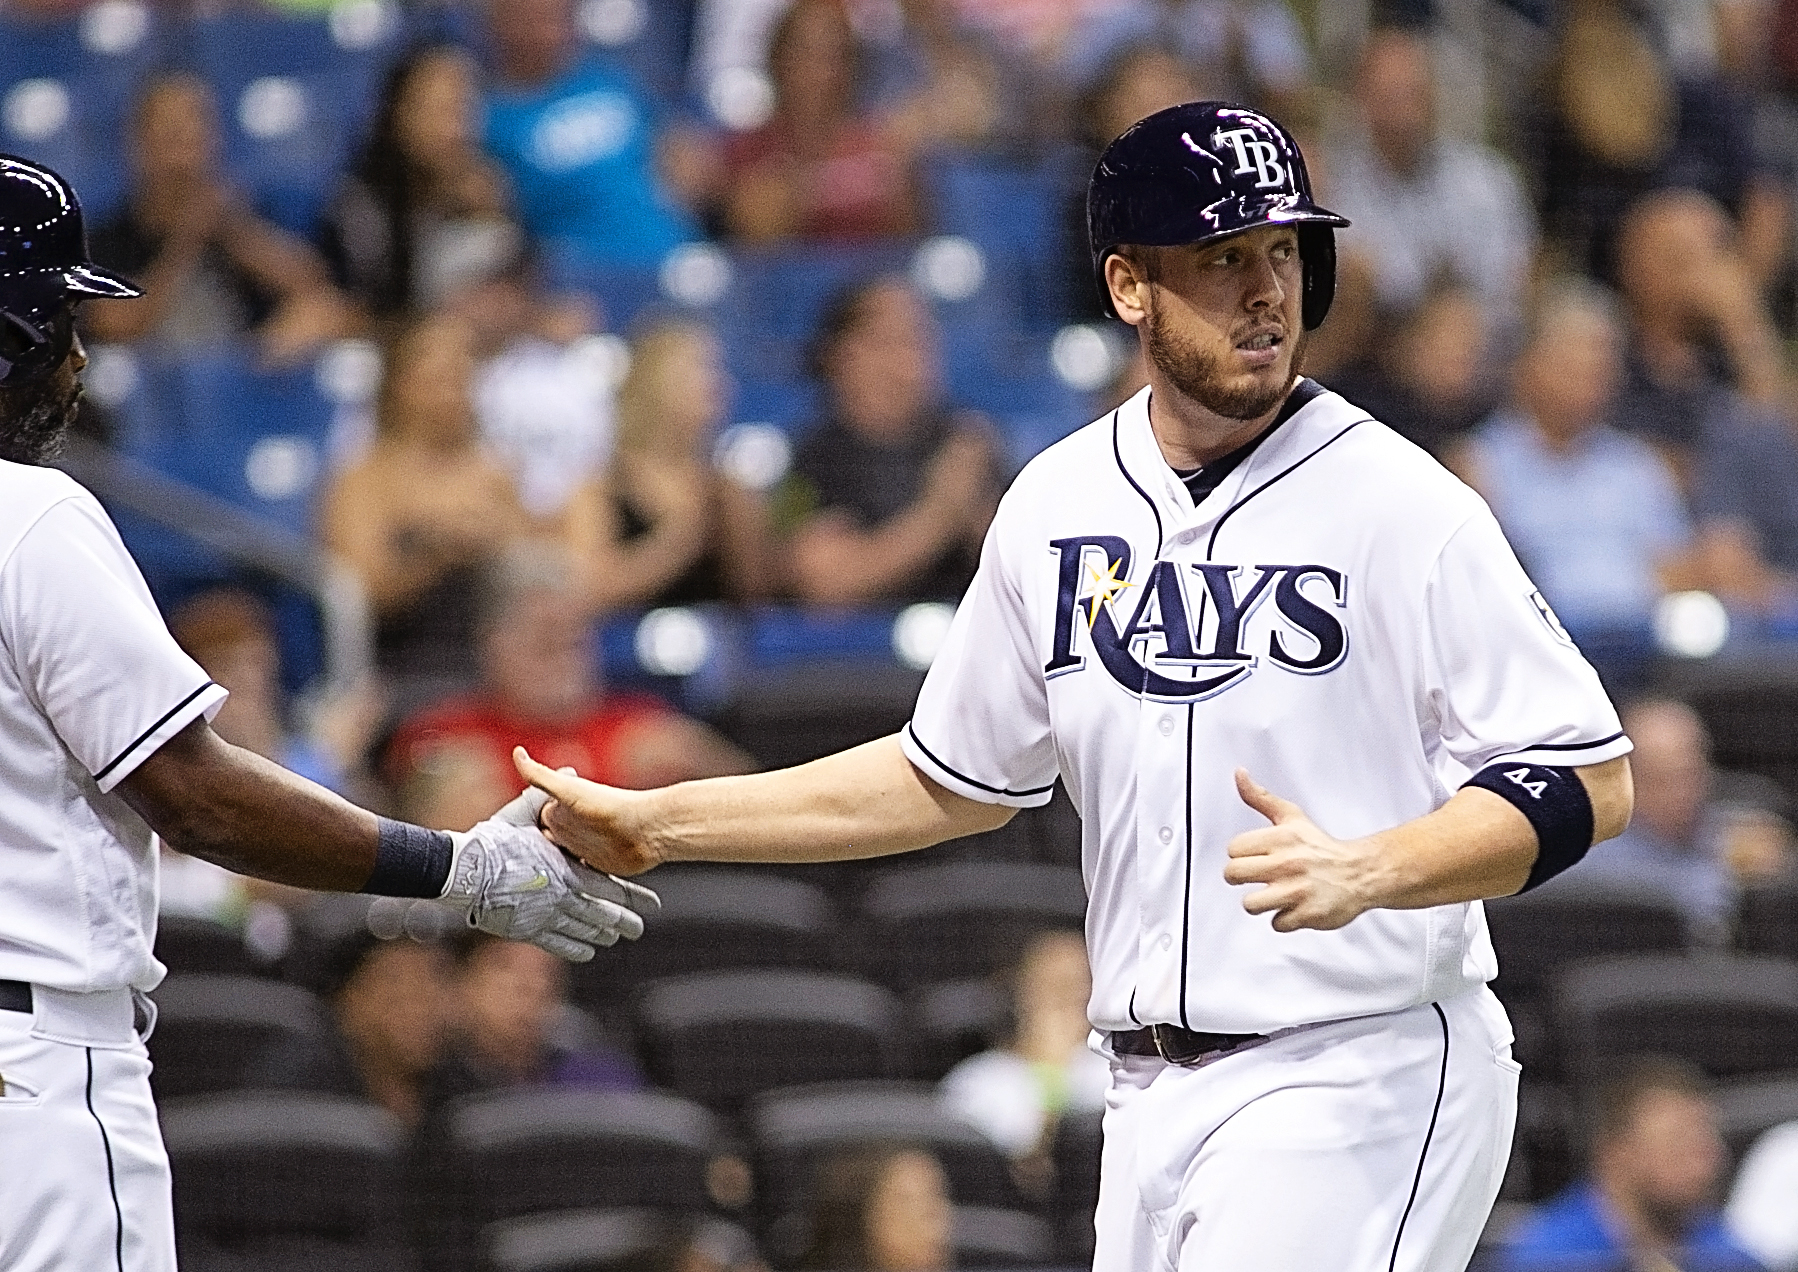 Cron hit his 17th homer, a personal best./CARMEN MANDATO